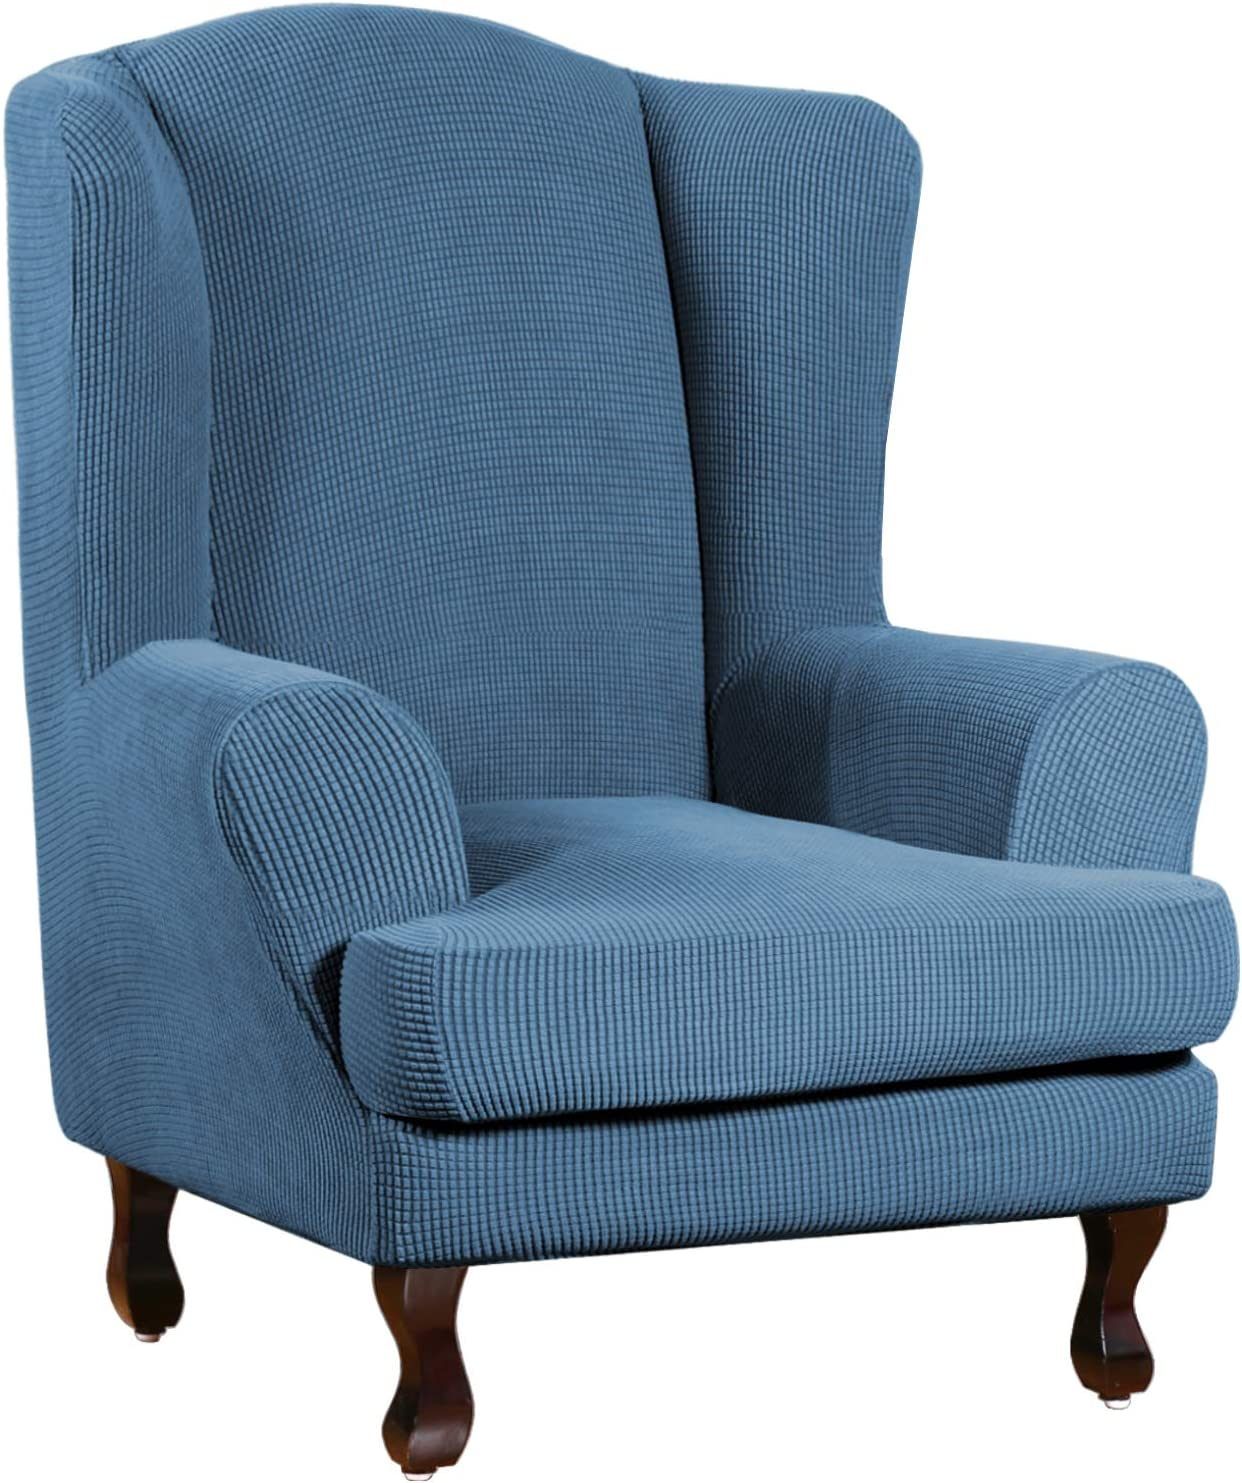 Super Stretch Stylish Furniture Cover/Wingback Chair Cover with Elastic Bottom Anti-Slip Foam Sticks Featuring Jacquard Fabric Small Checks Fabric (Wing Chair, Dustyblue)